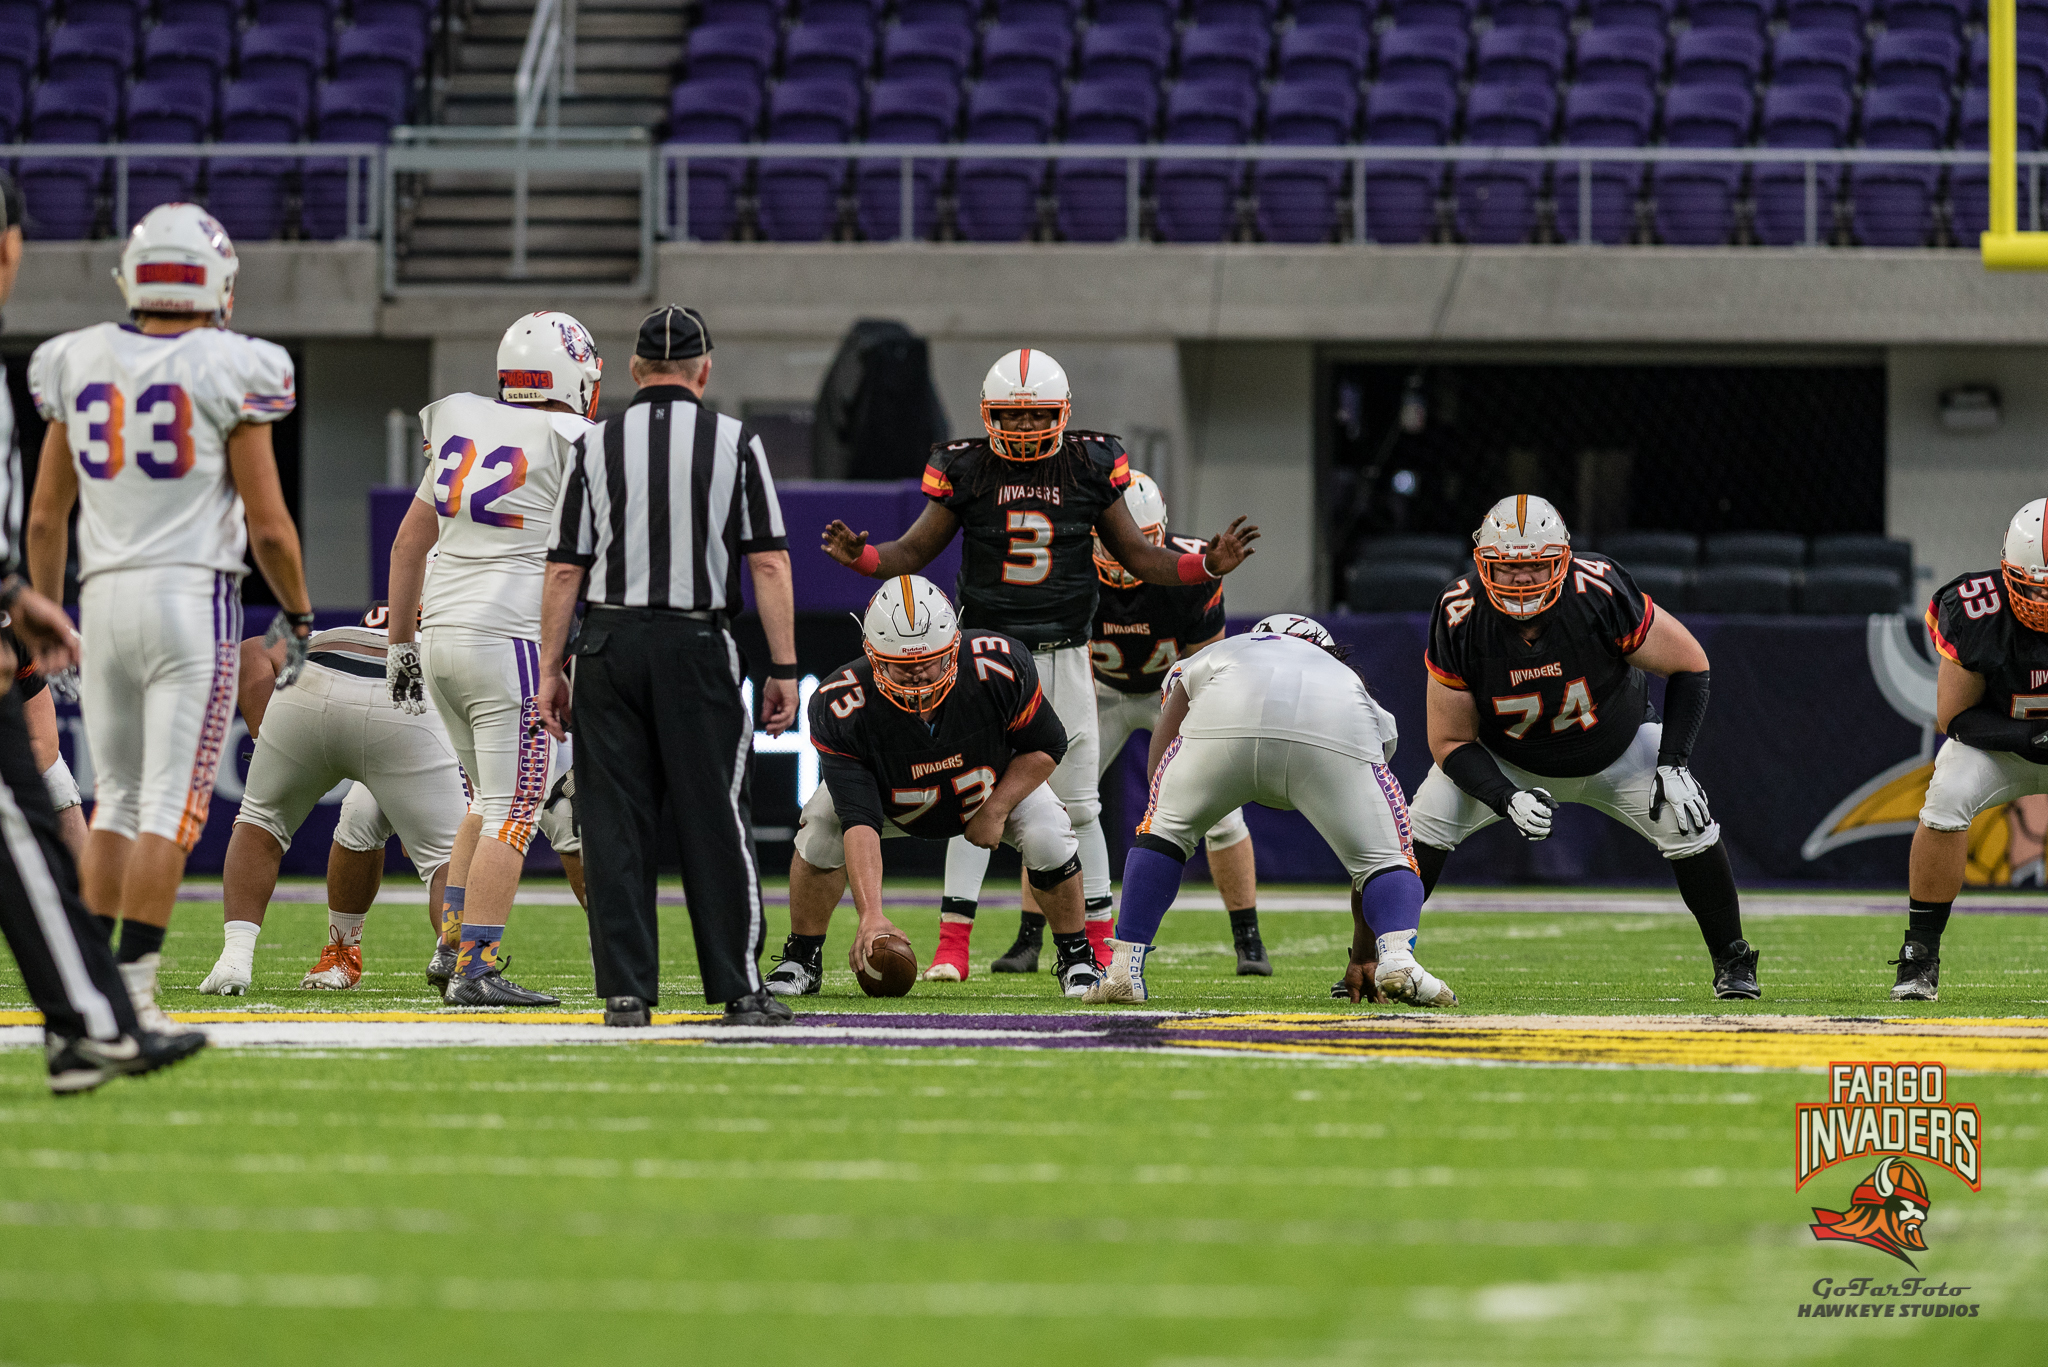 Fargo Invaders At The SPFL Winter Pigskin Classic 2018